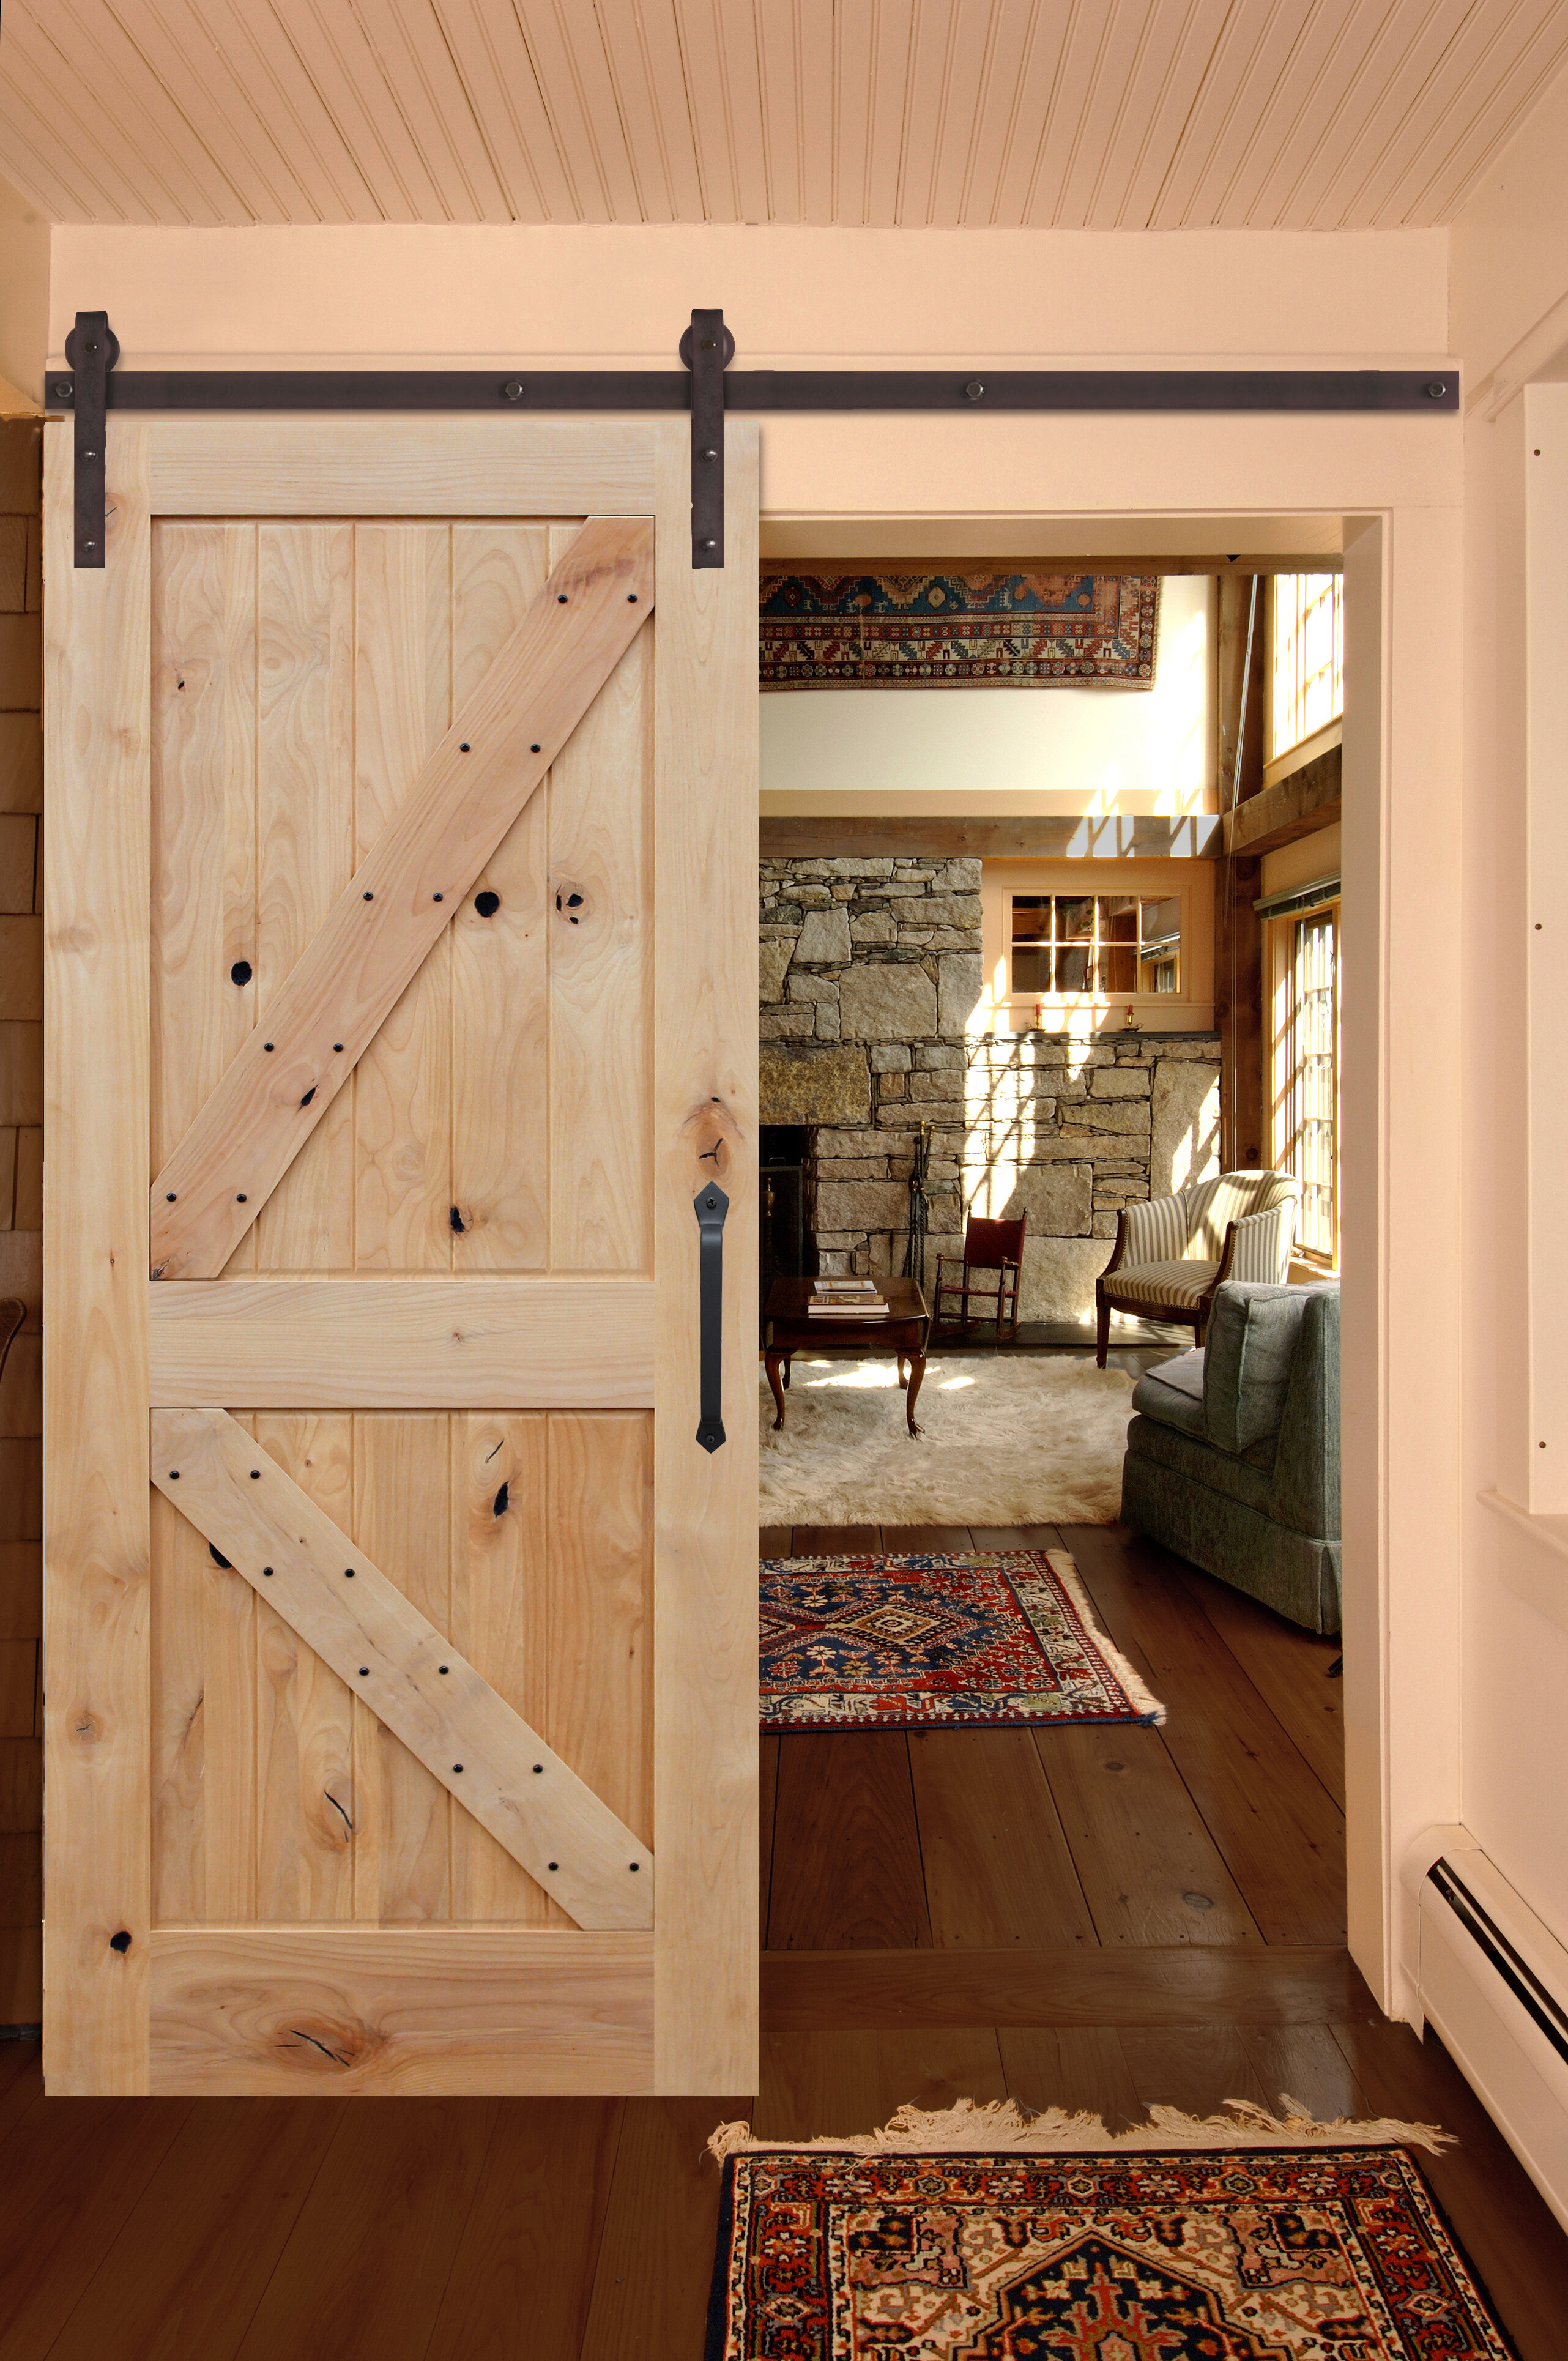 Image of: Creativeentryways Paneled Wood Unfinished Rustic Knotty Alder Barn Door With Installation Hardware Kit Wayfair